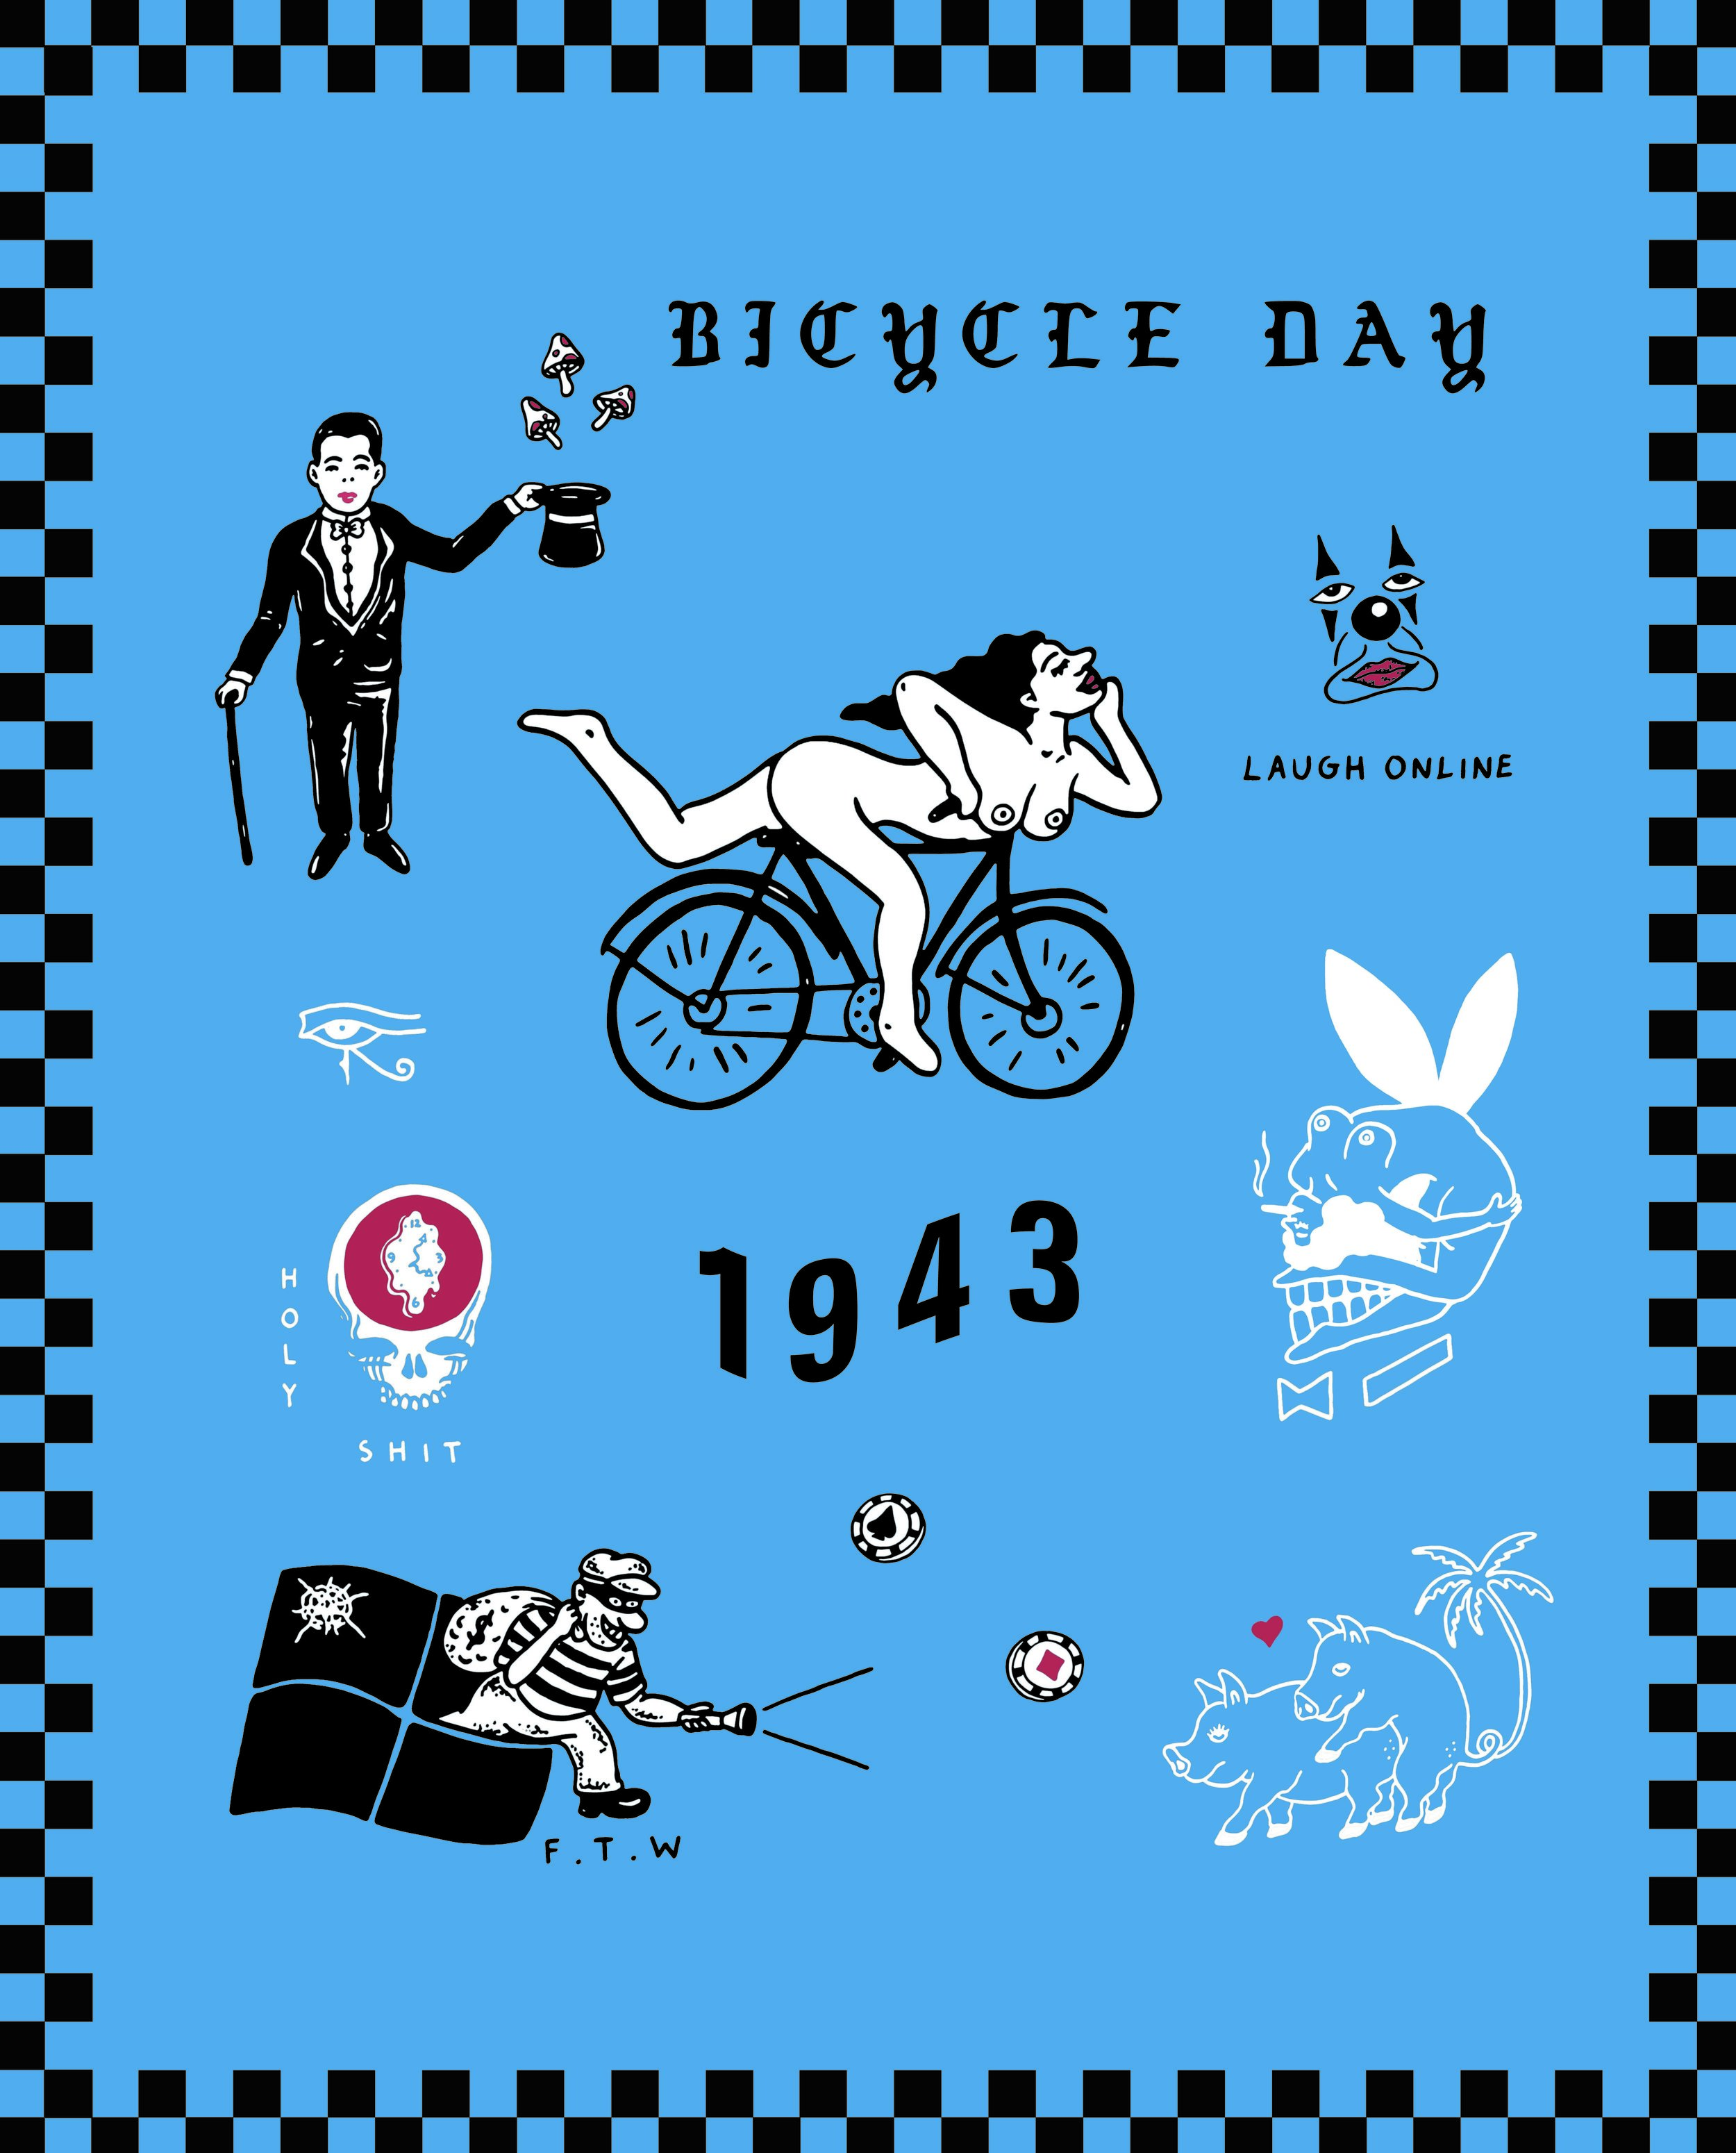 bicycle_day.jpg